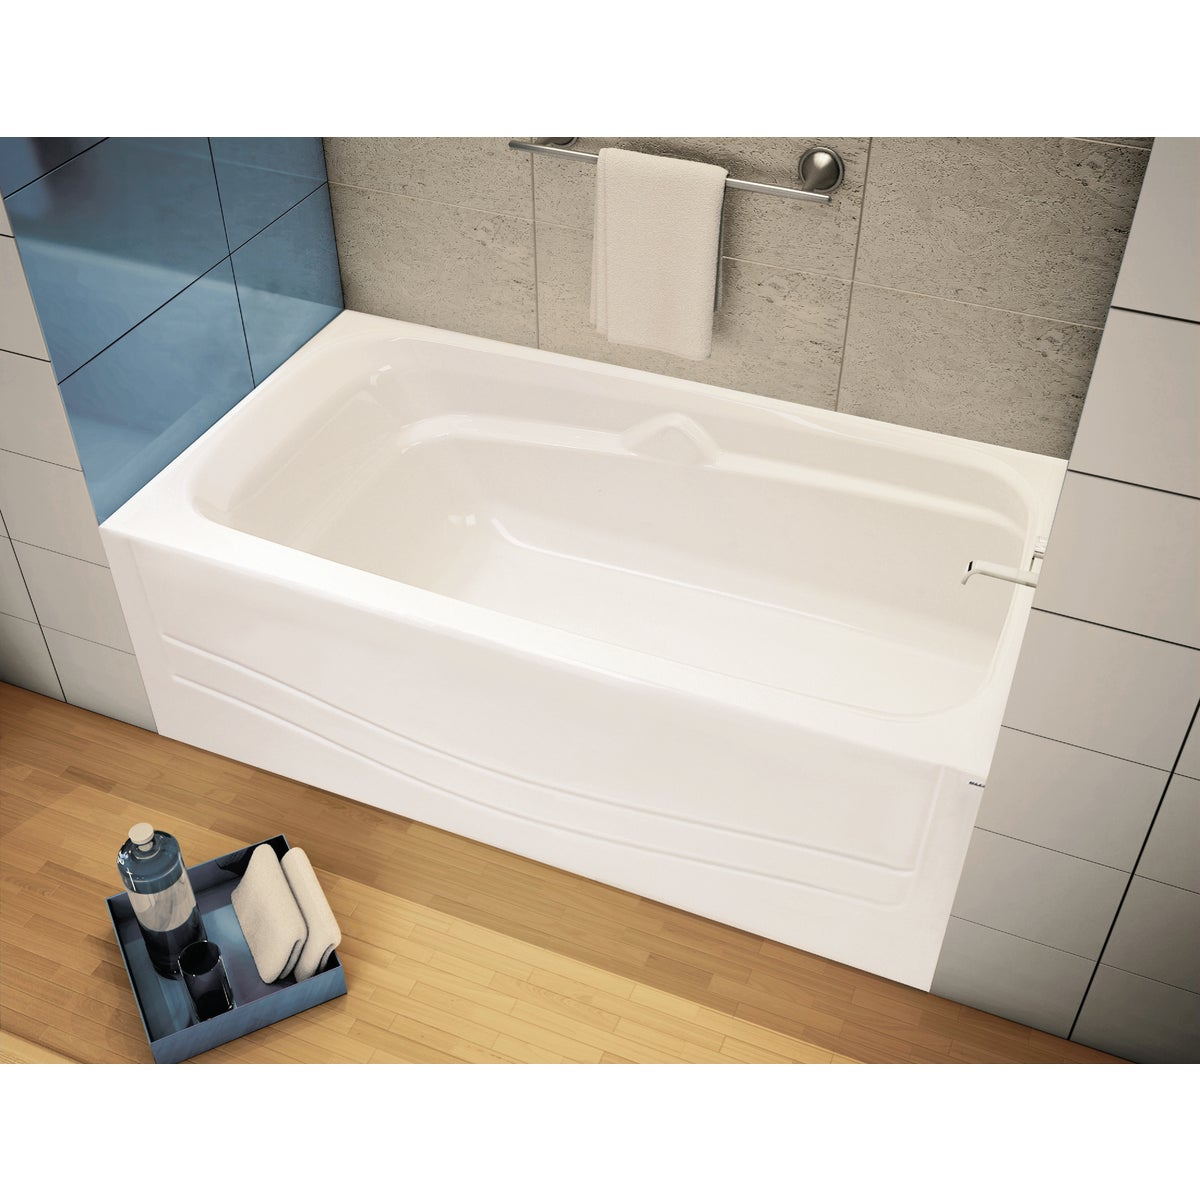 WHITE RH SOAKING TUB